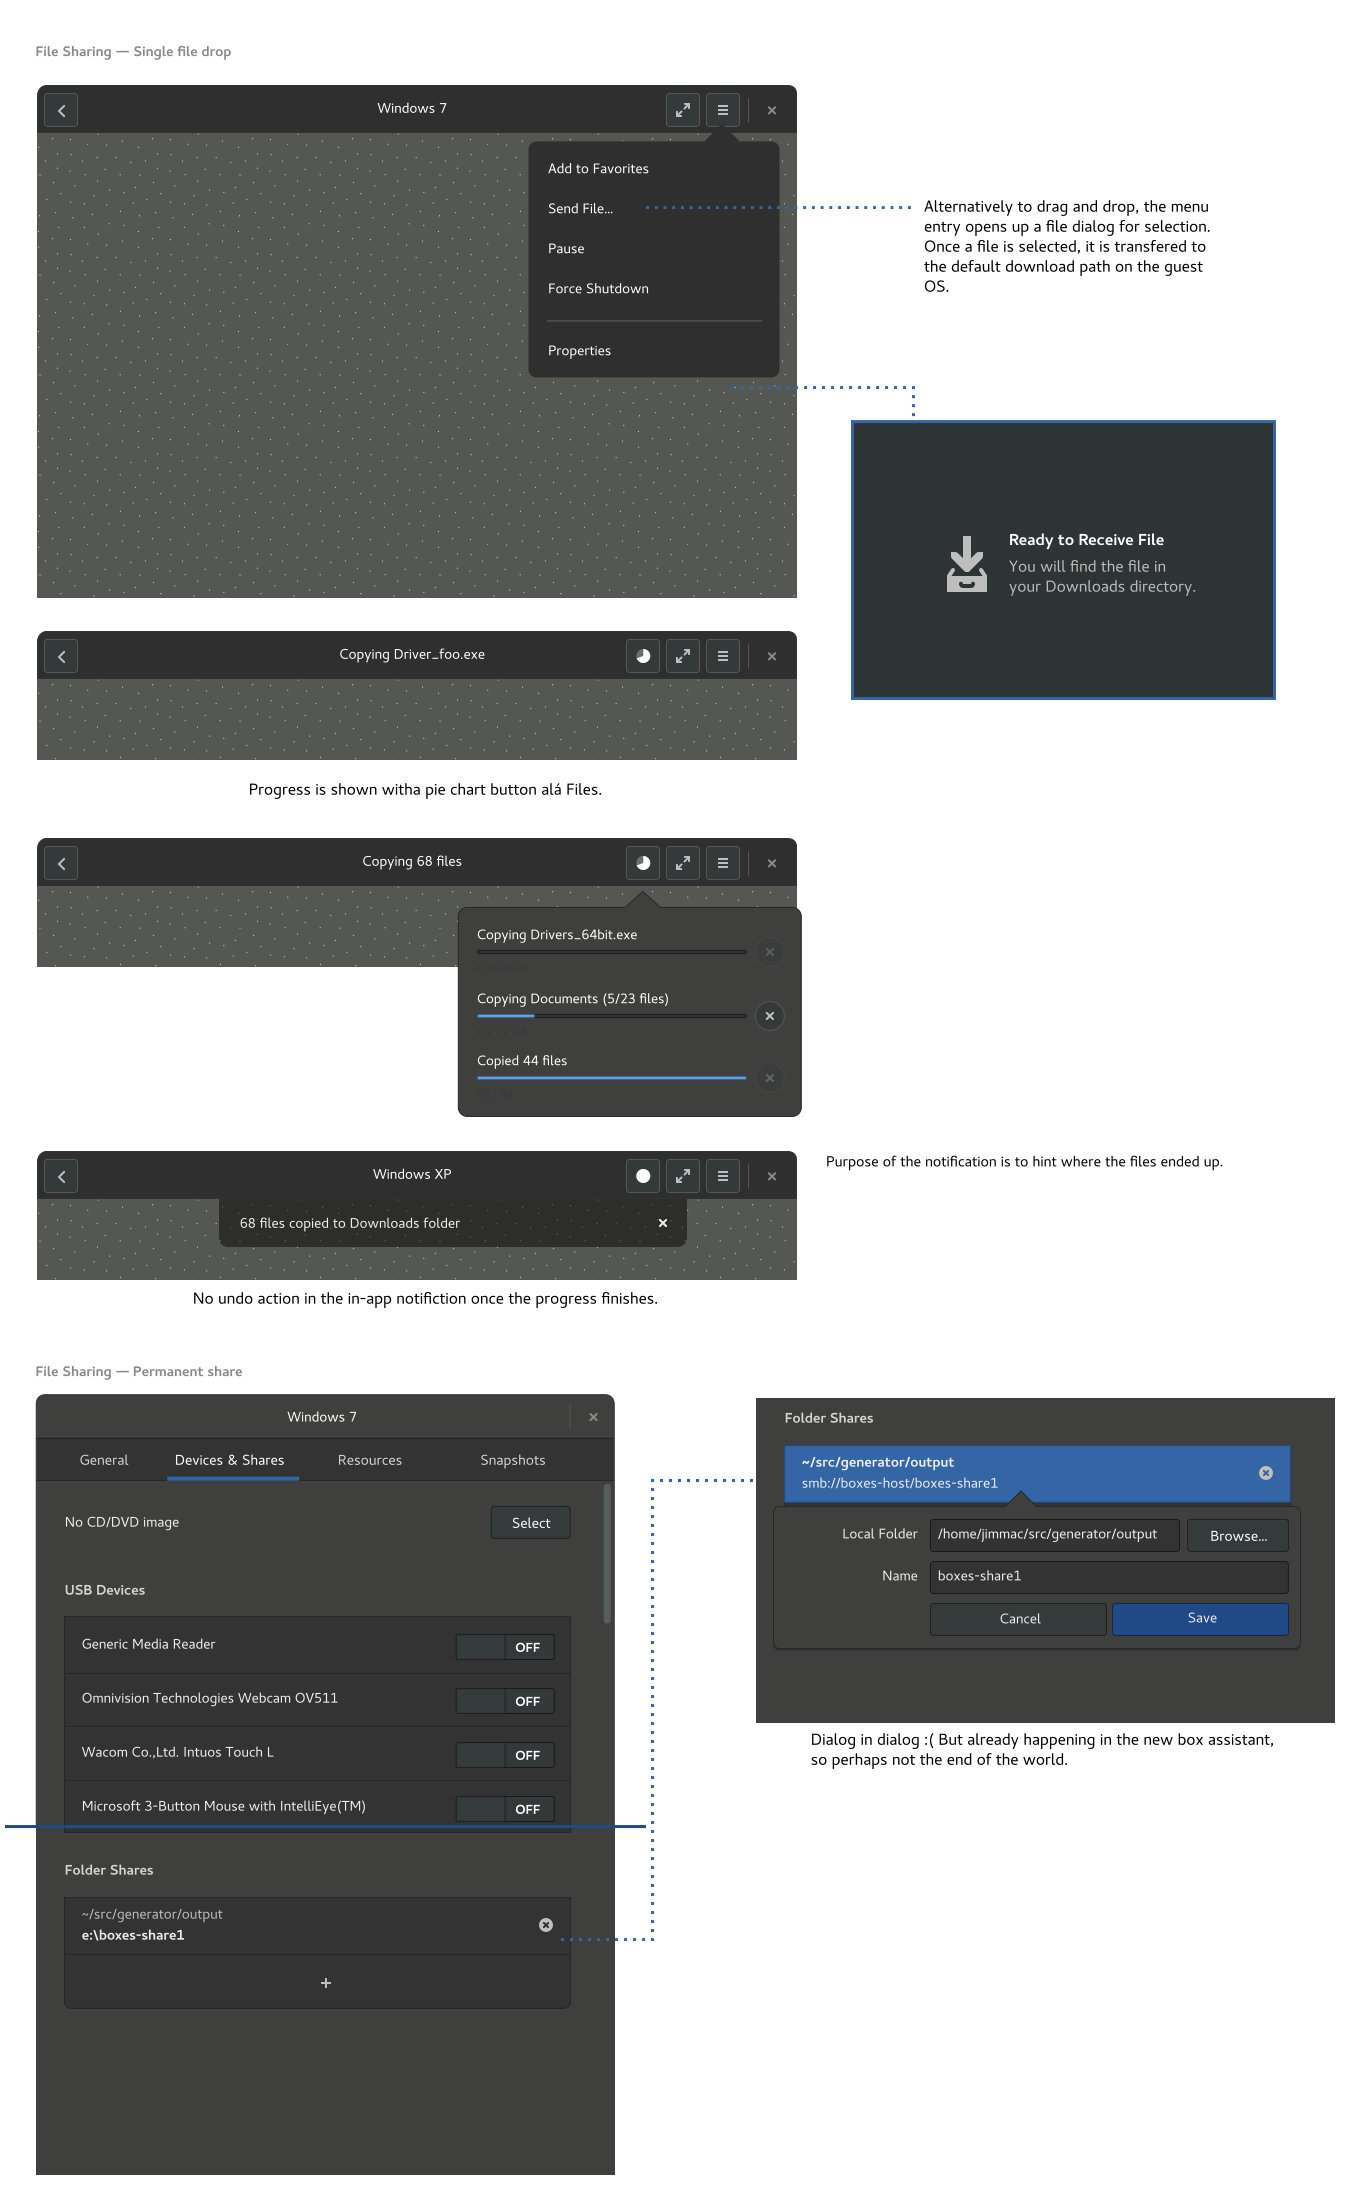 https://raw.githubusercontent.com/gnome-design-team/gnome-mockups/master/boxes/wires/file-sharing.png